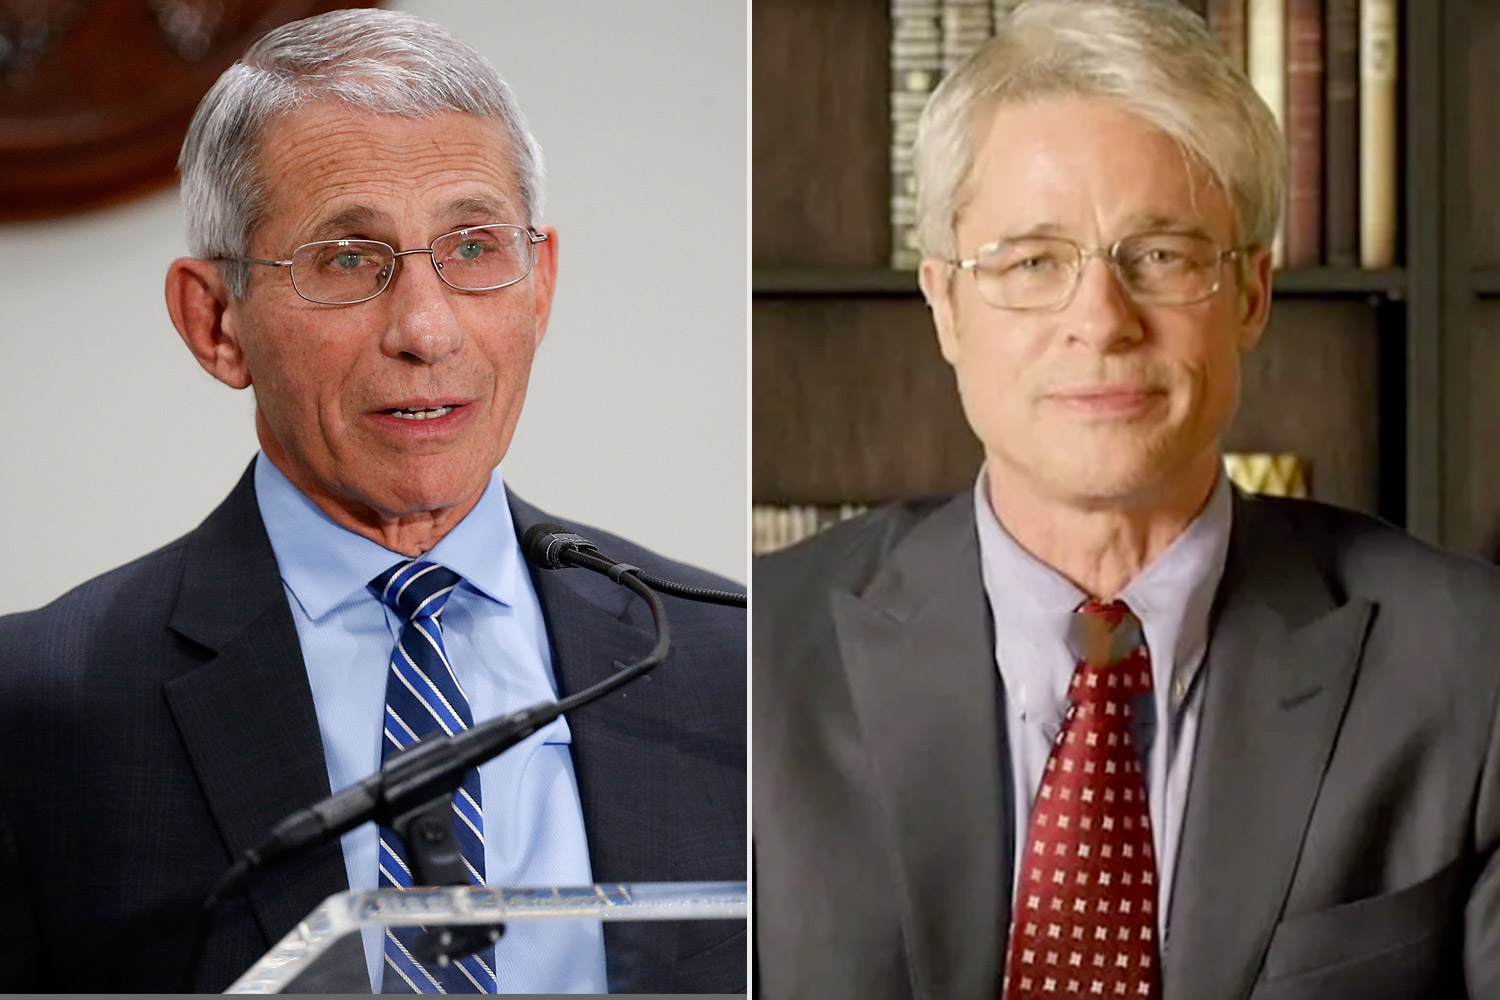 Anthony Fauci says Brad Pitt did a great job playing him on SNL ...